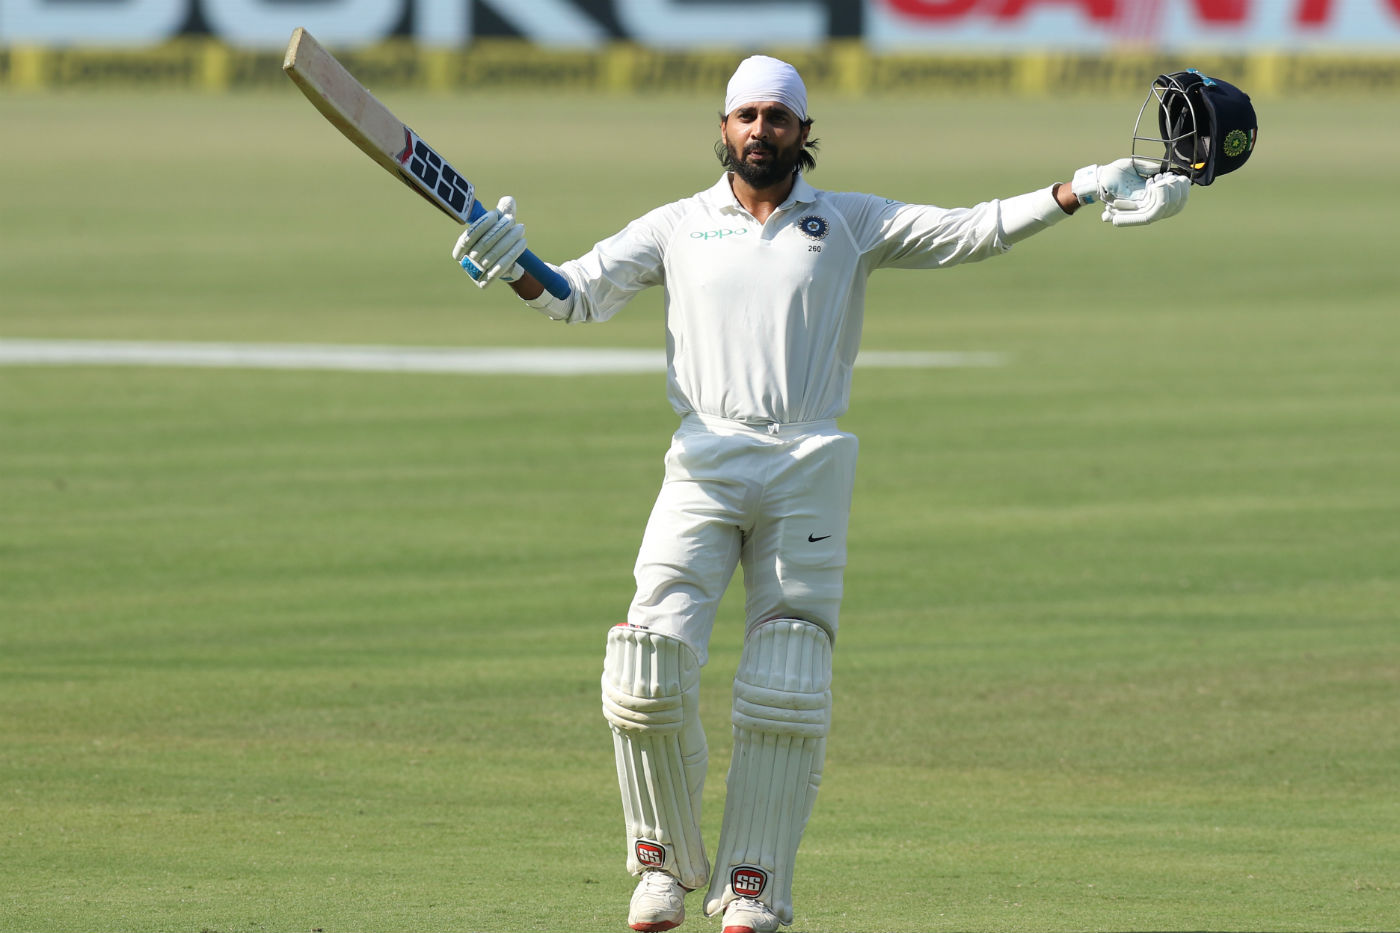 India reaches 97-1 at lunch on day 2